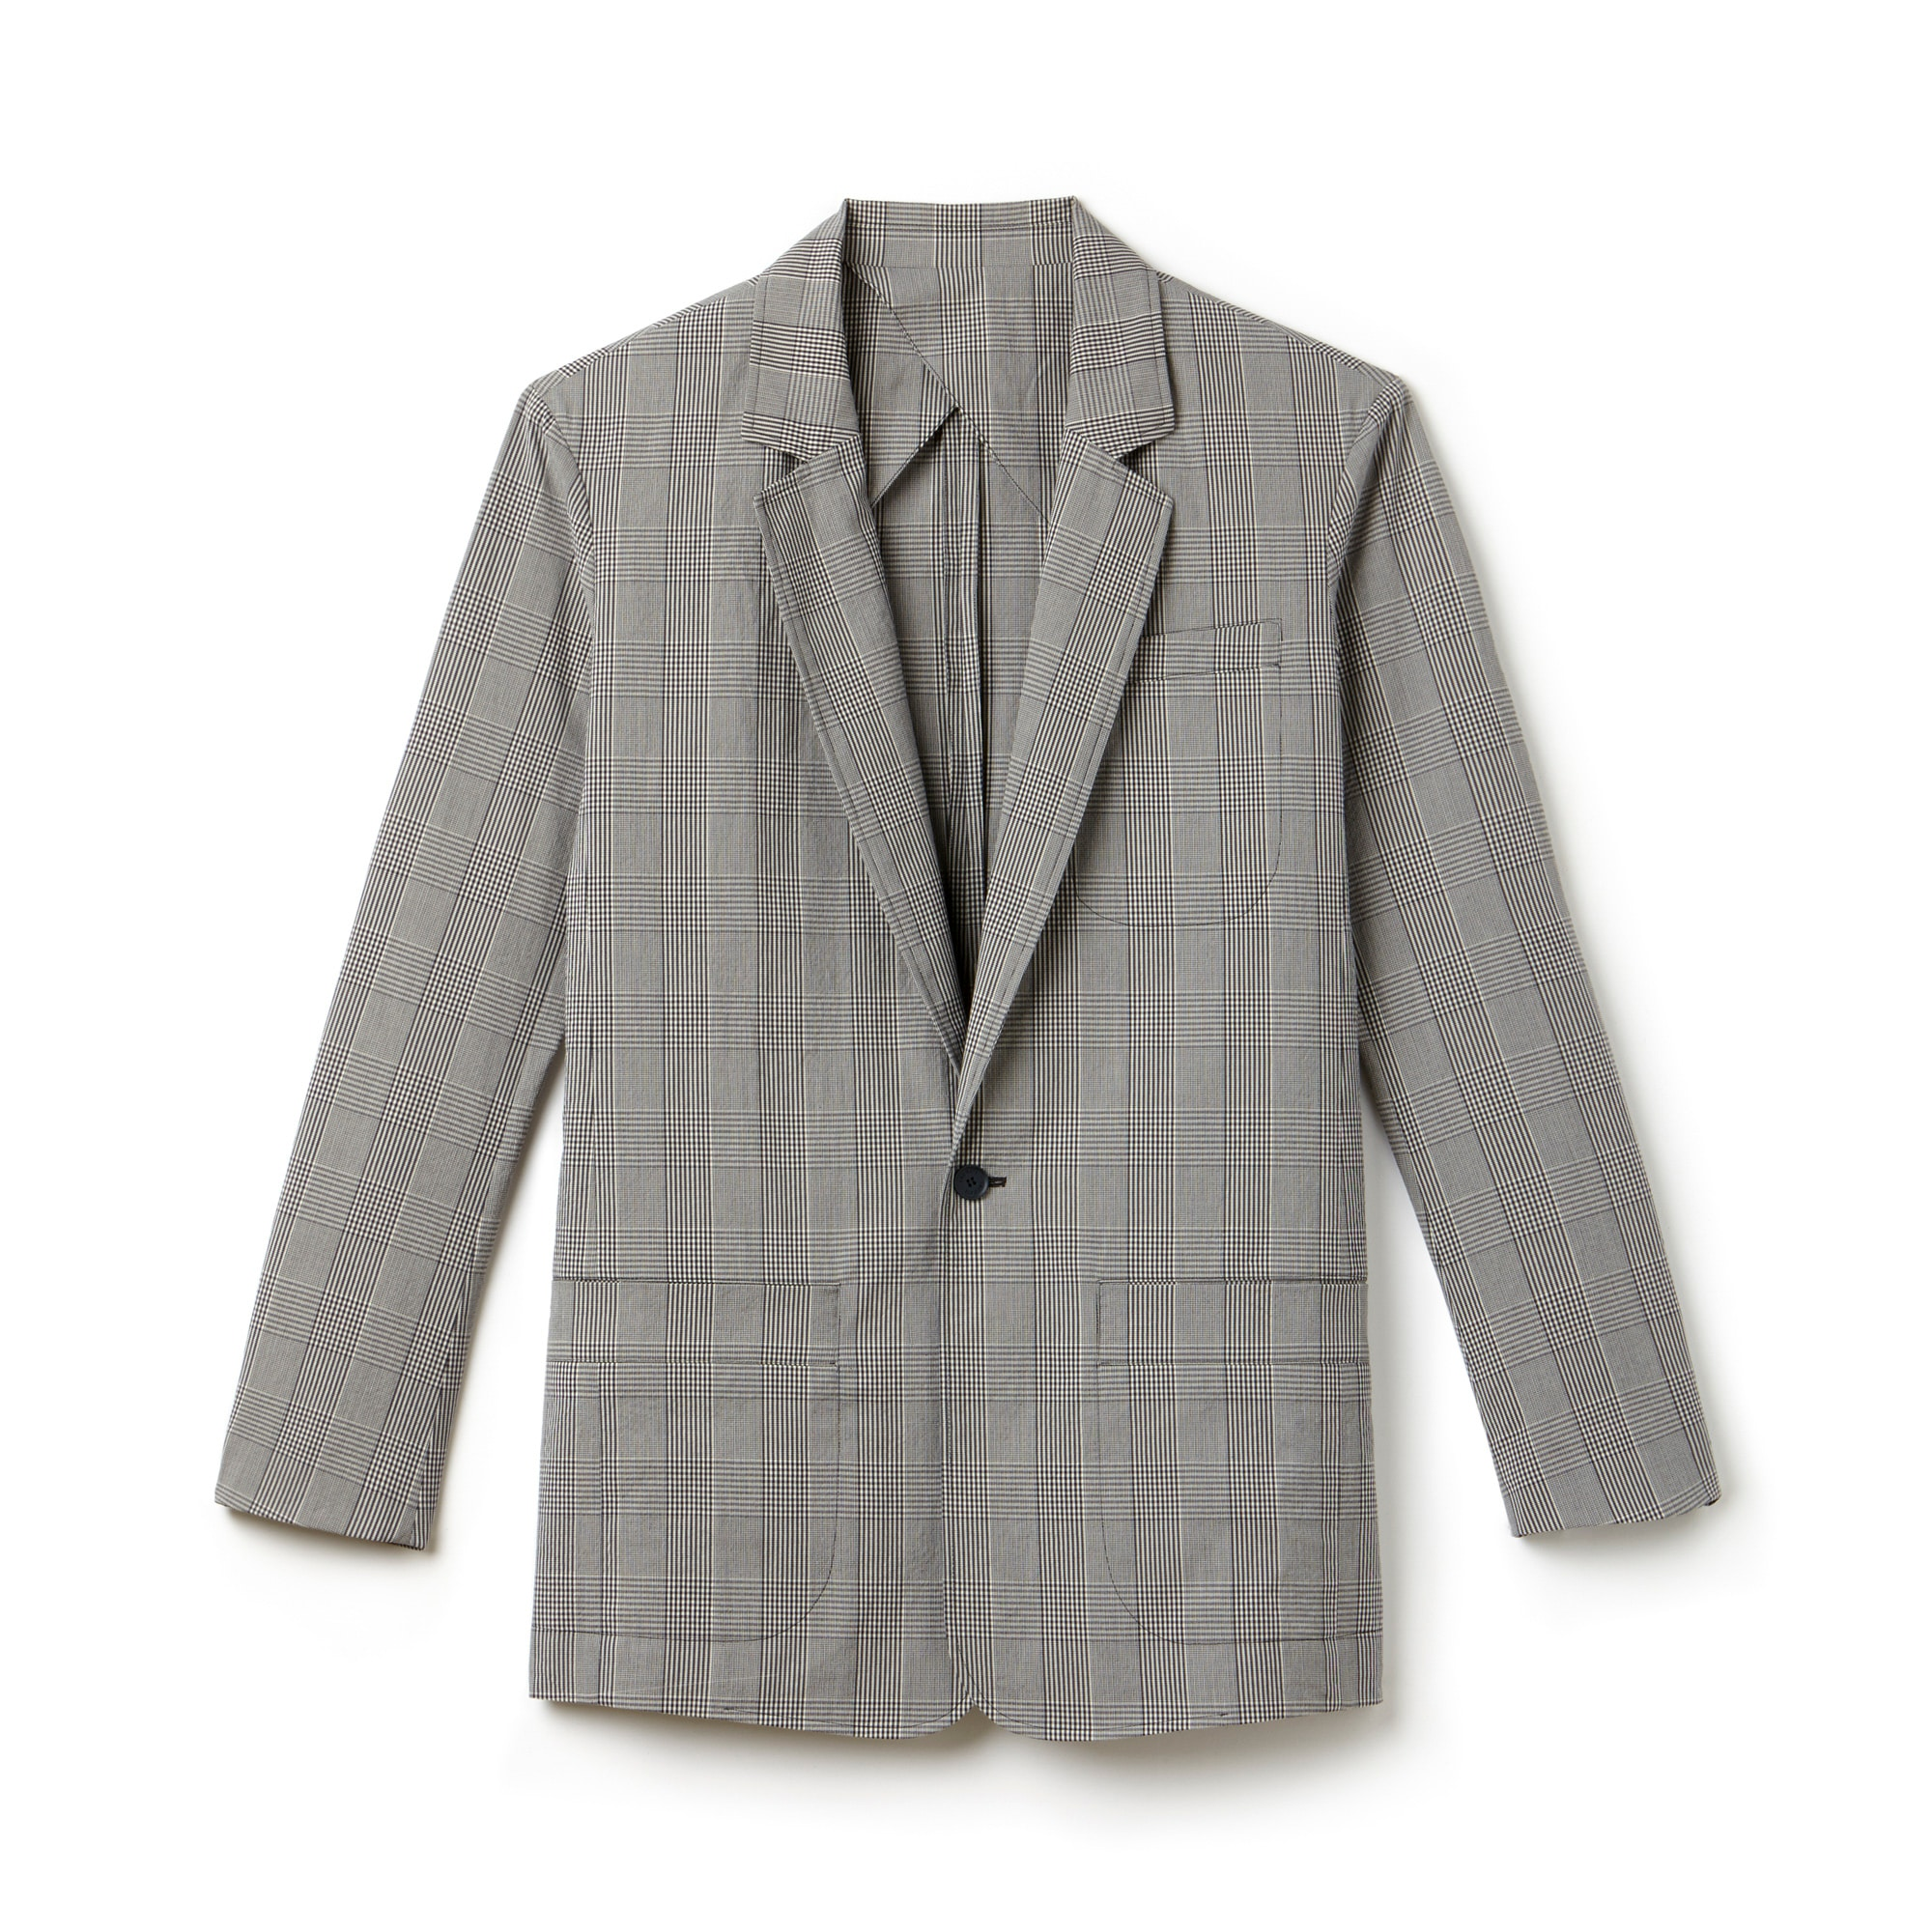 Men's Fashion Show Seersucker Blazer